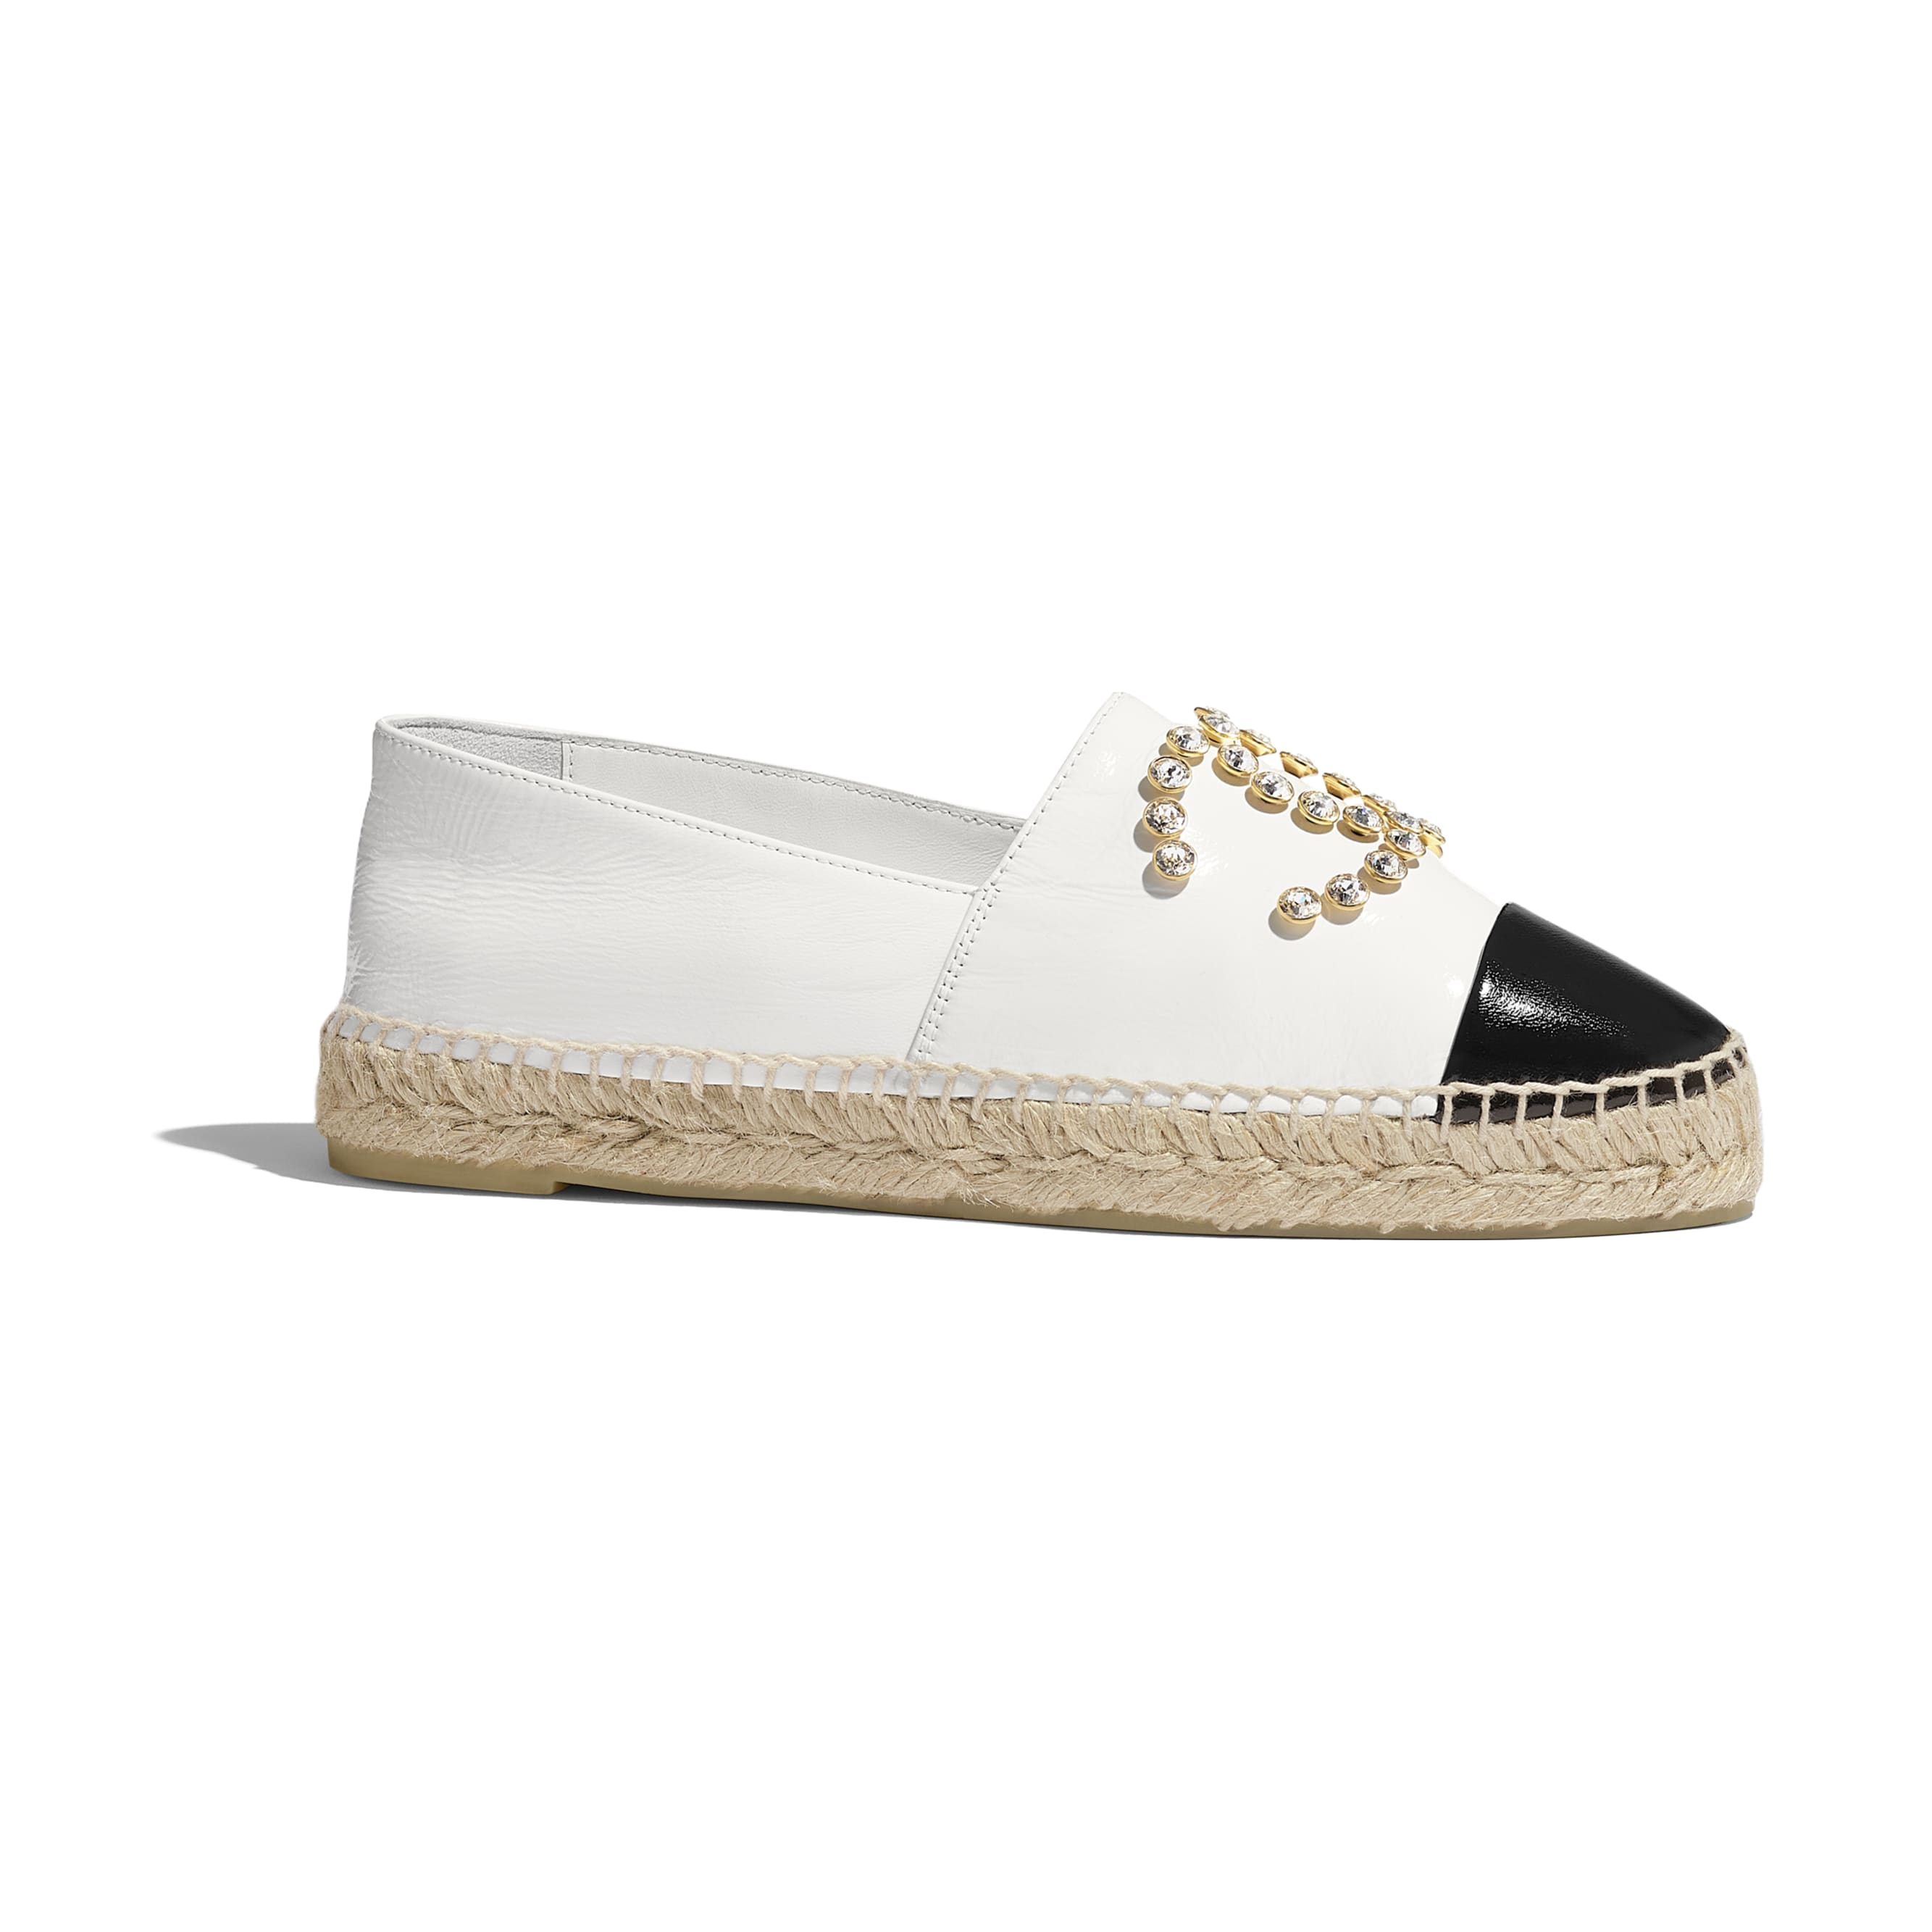 Espadrilles - White & Black - Patent Lambskin - CHANEL - Default view - see standard sized version